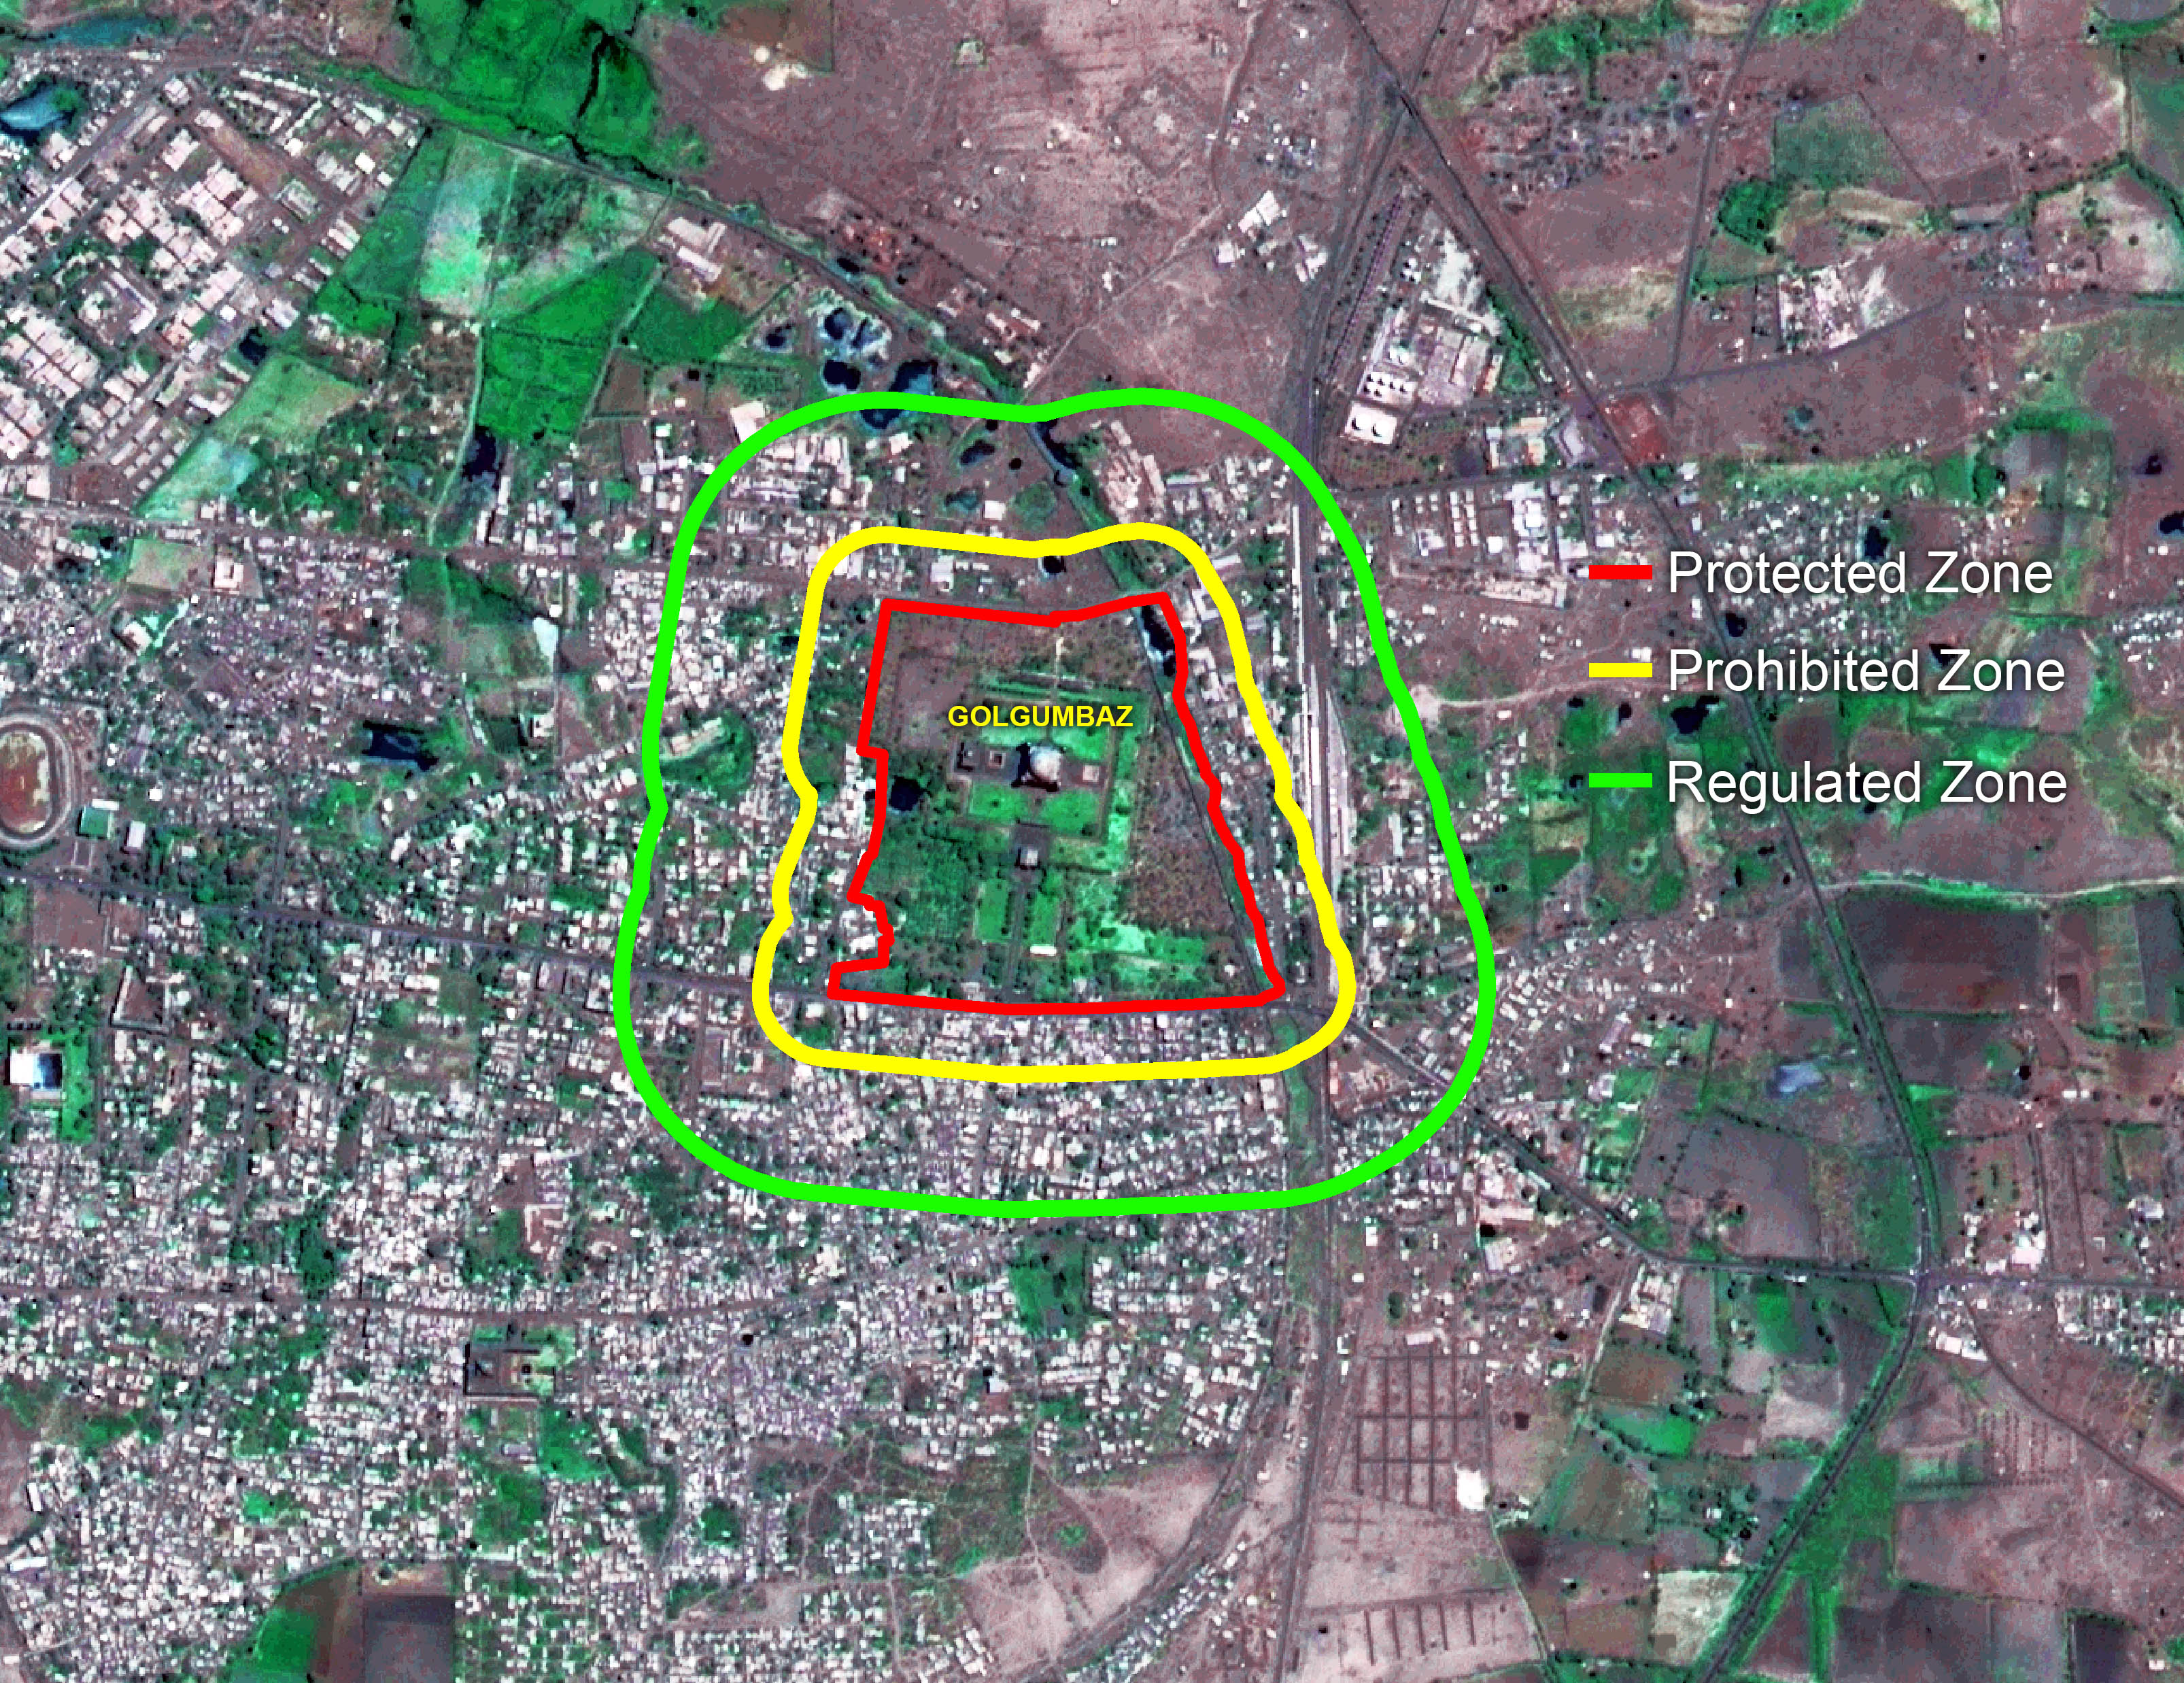 ISRO To Map Heritage Sites In India Geospatial World - Satellite map sites